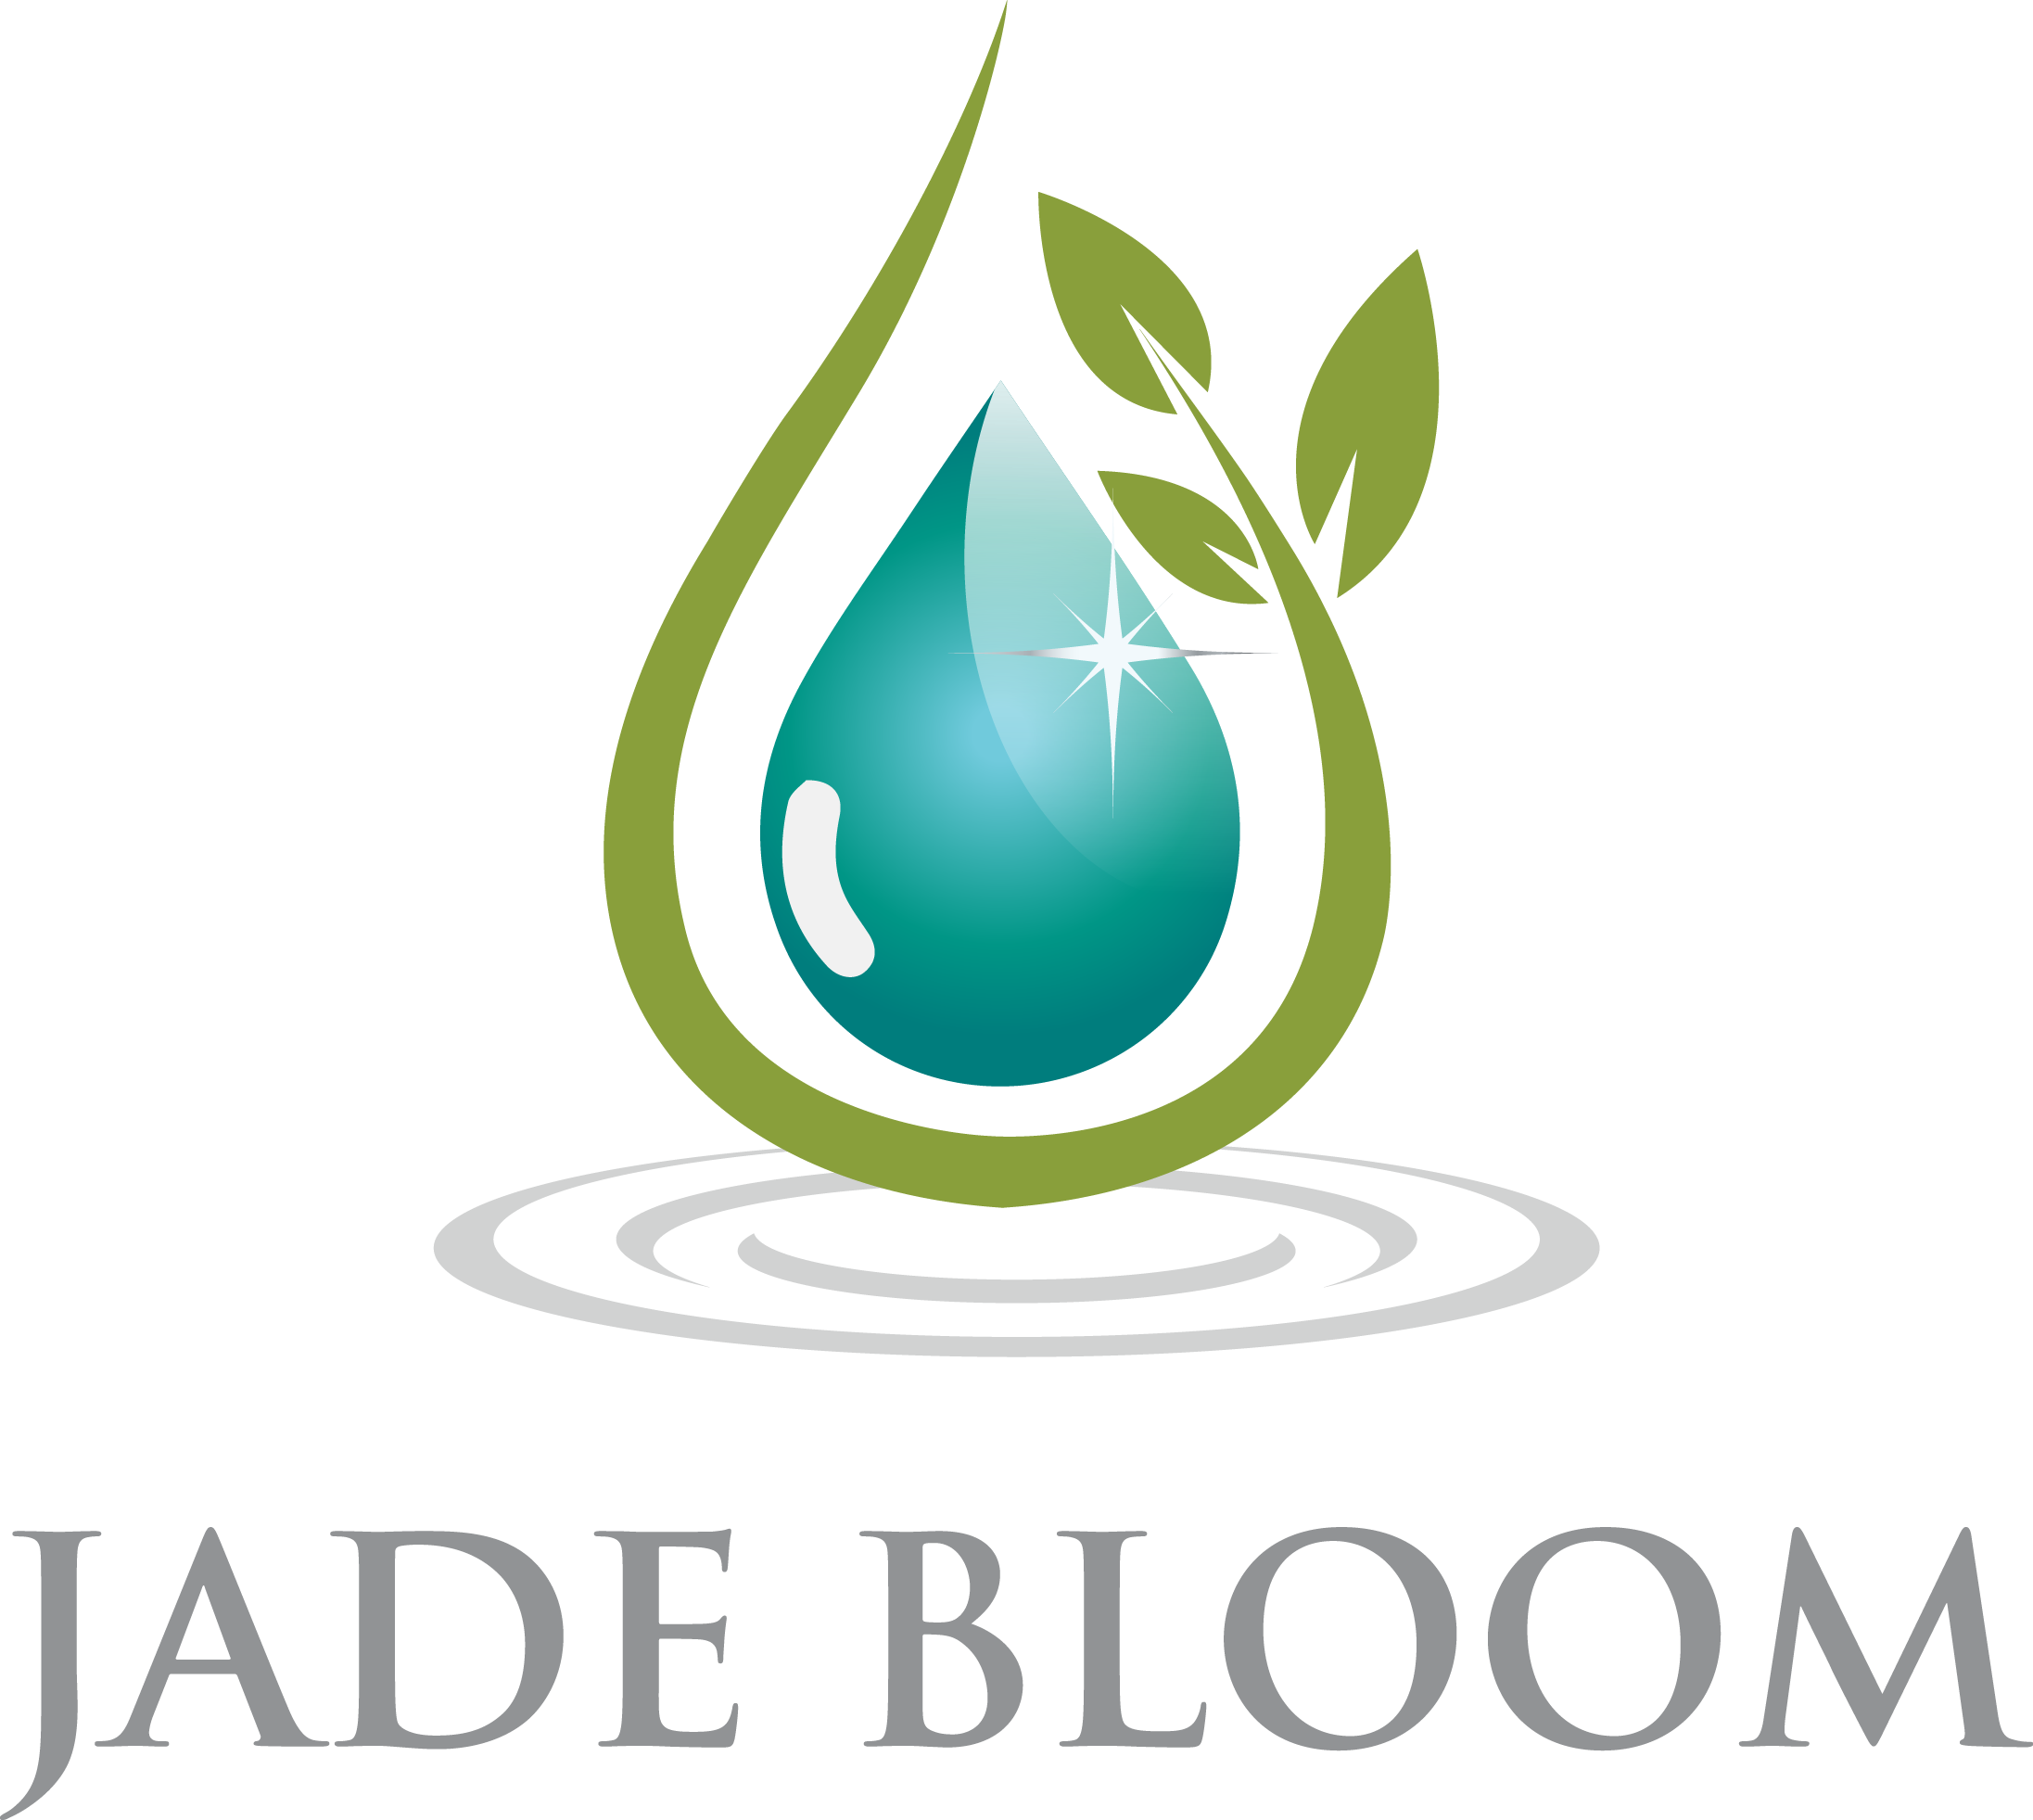 Jade Bloom Promo Code